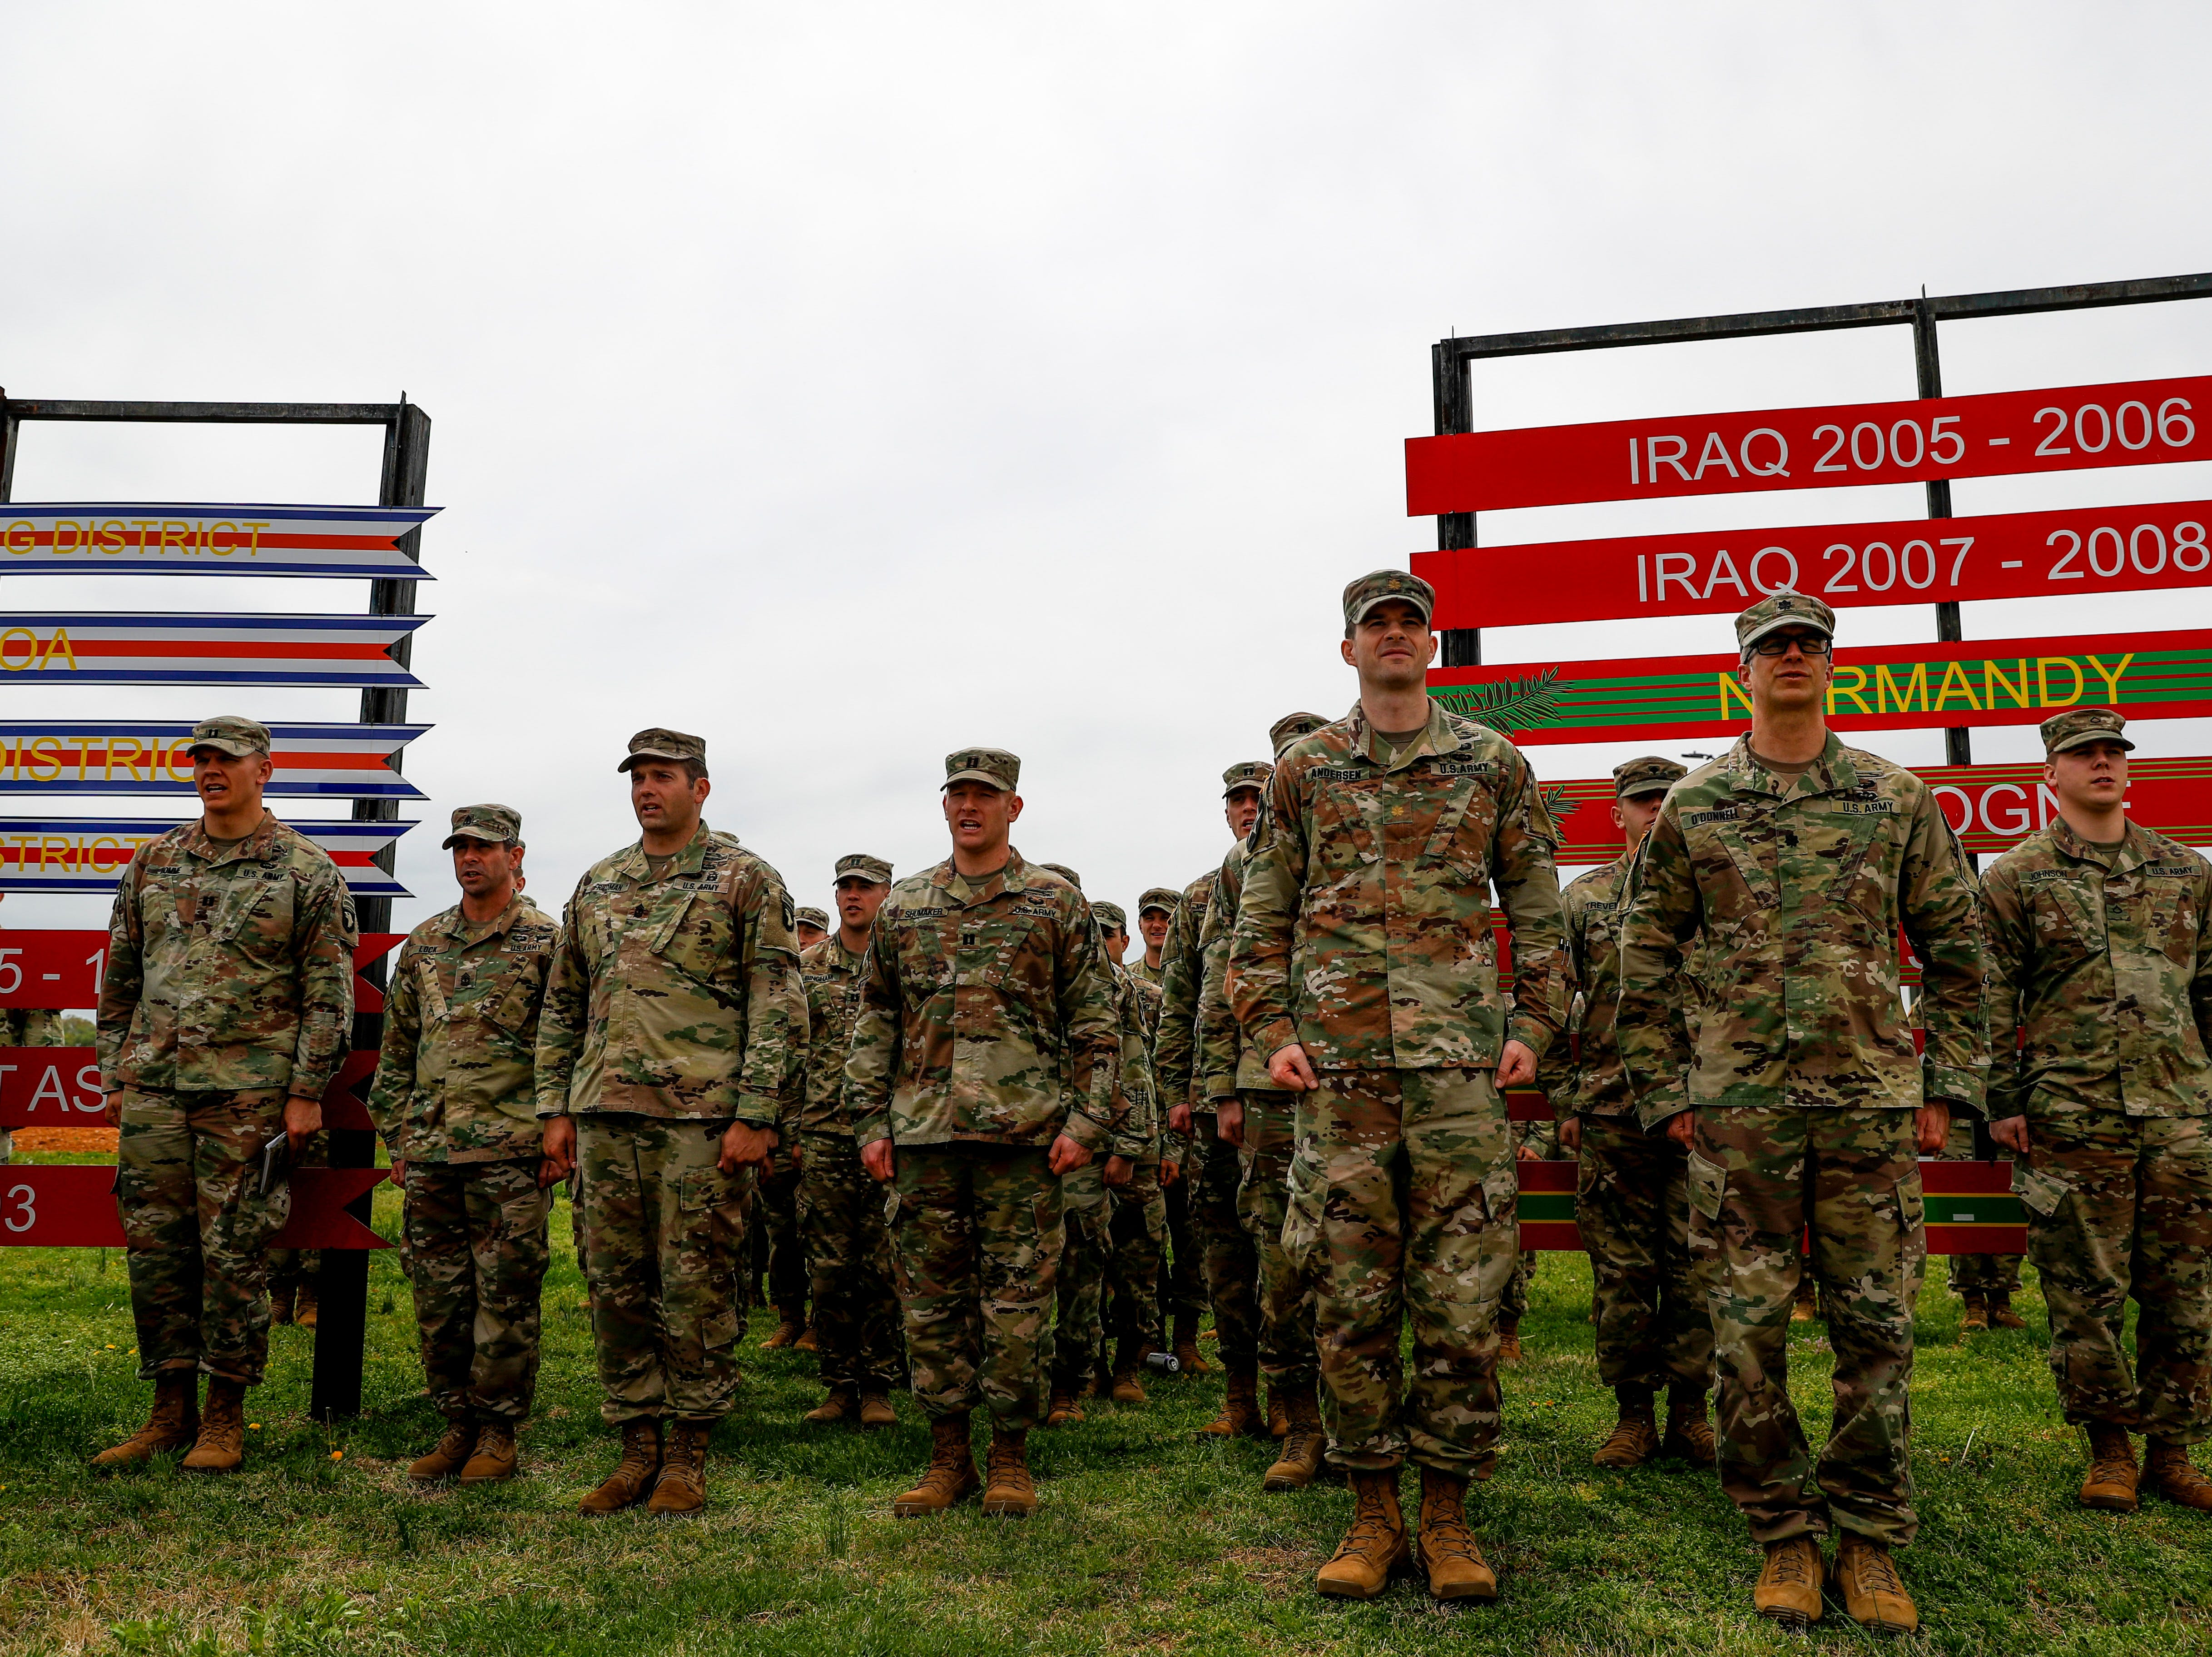 Soldiers stand at attention while watching fellow soldiers during a colors casing ceremony prior to deployment for Ukraine at 2 BCT Headquarters in Fort Campbell, KY., on Friday, April 12, 2019.